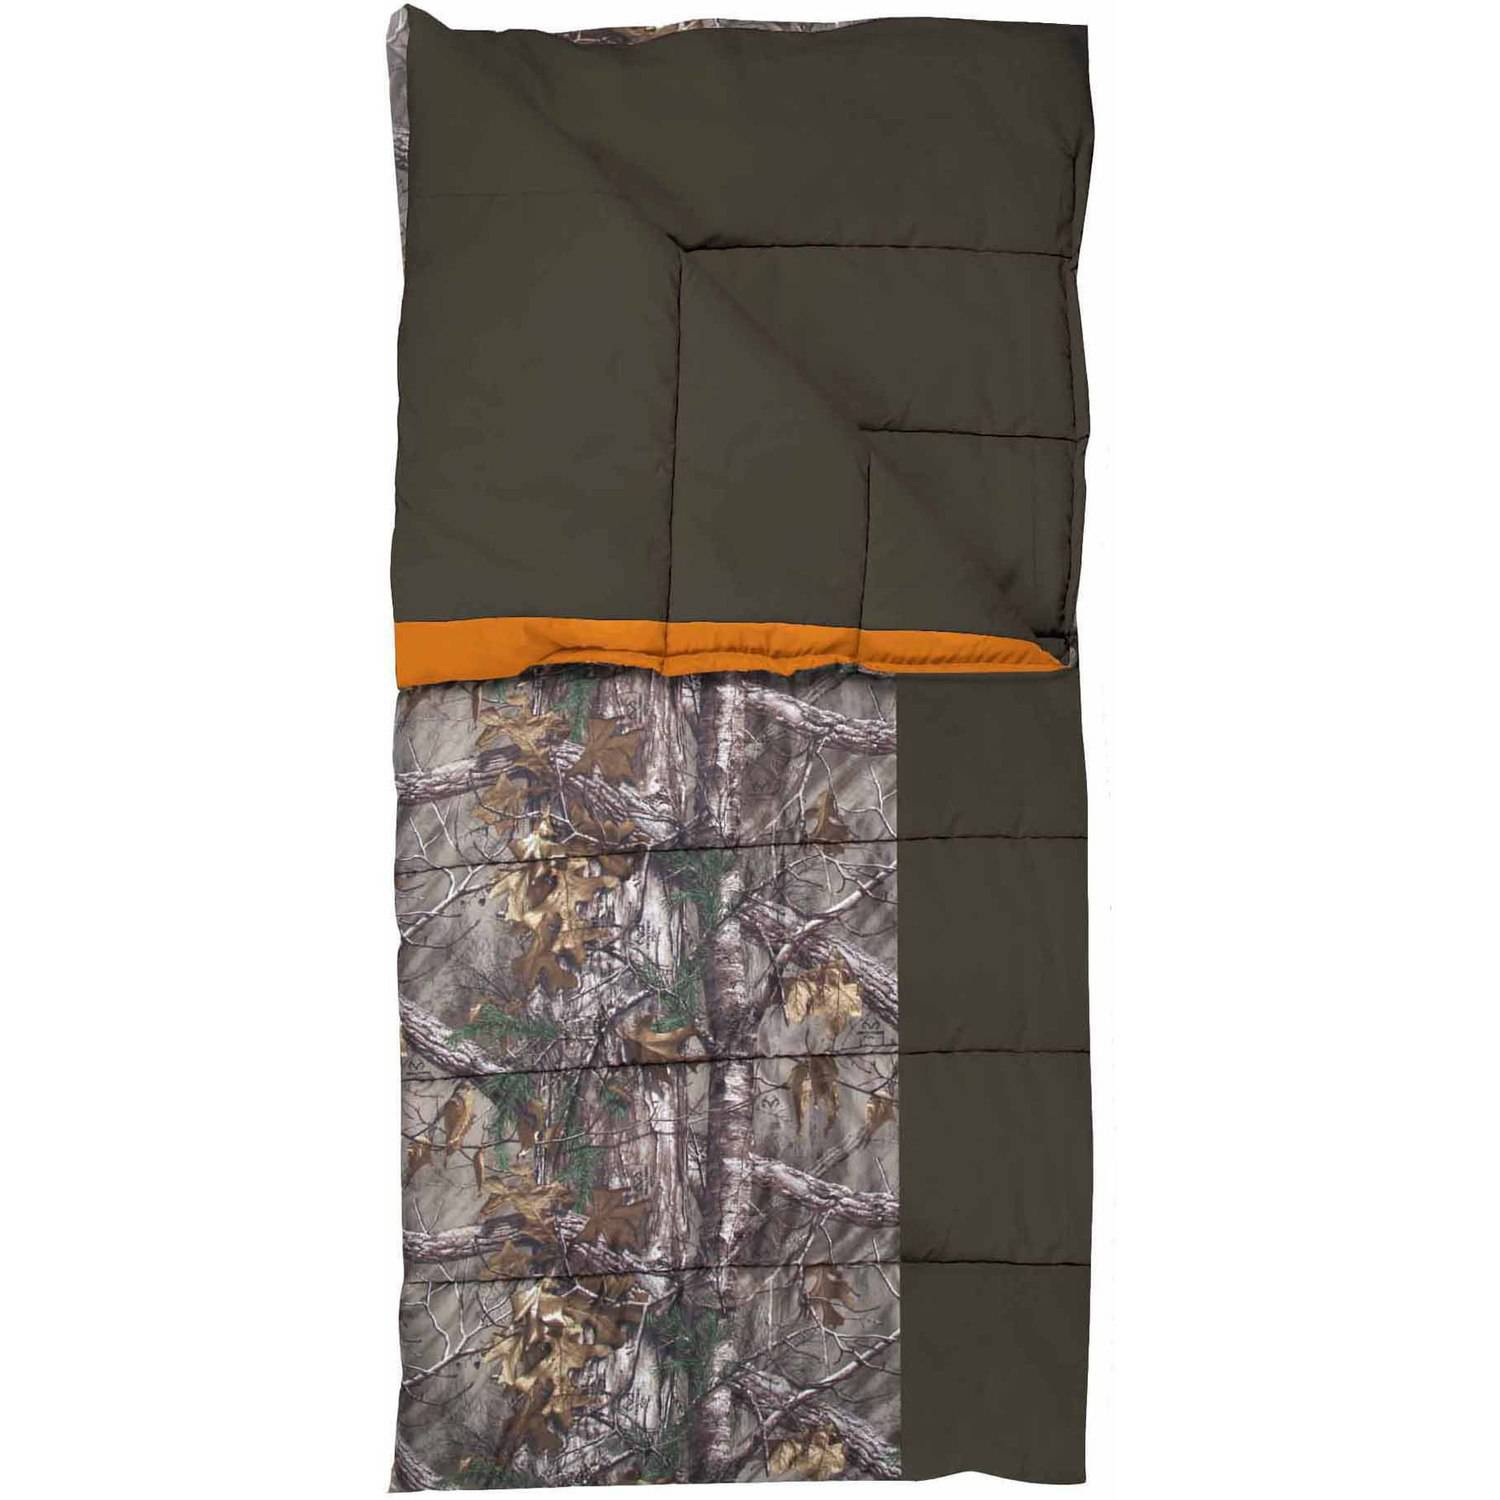 Master Sportsman Pathfinder Realtree Xtra 35-40 Degrees Sleeping Bag, Realtree Xtra by Exxel Outdoors